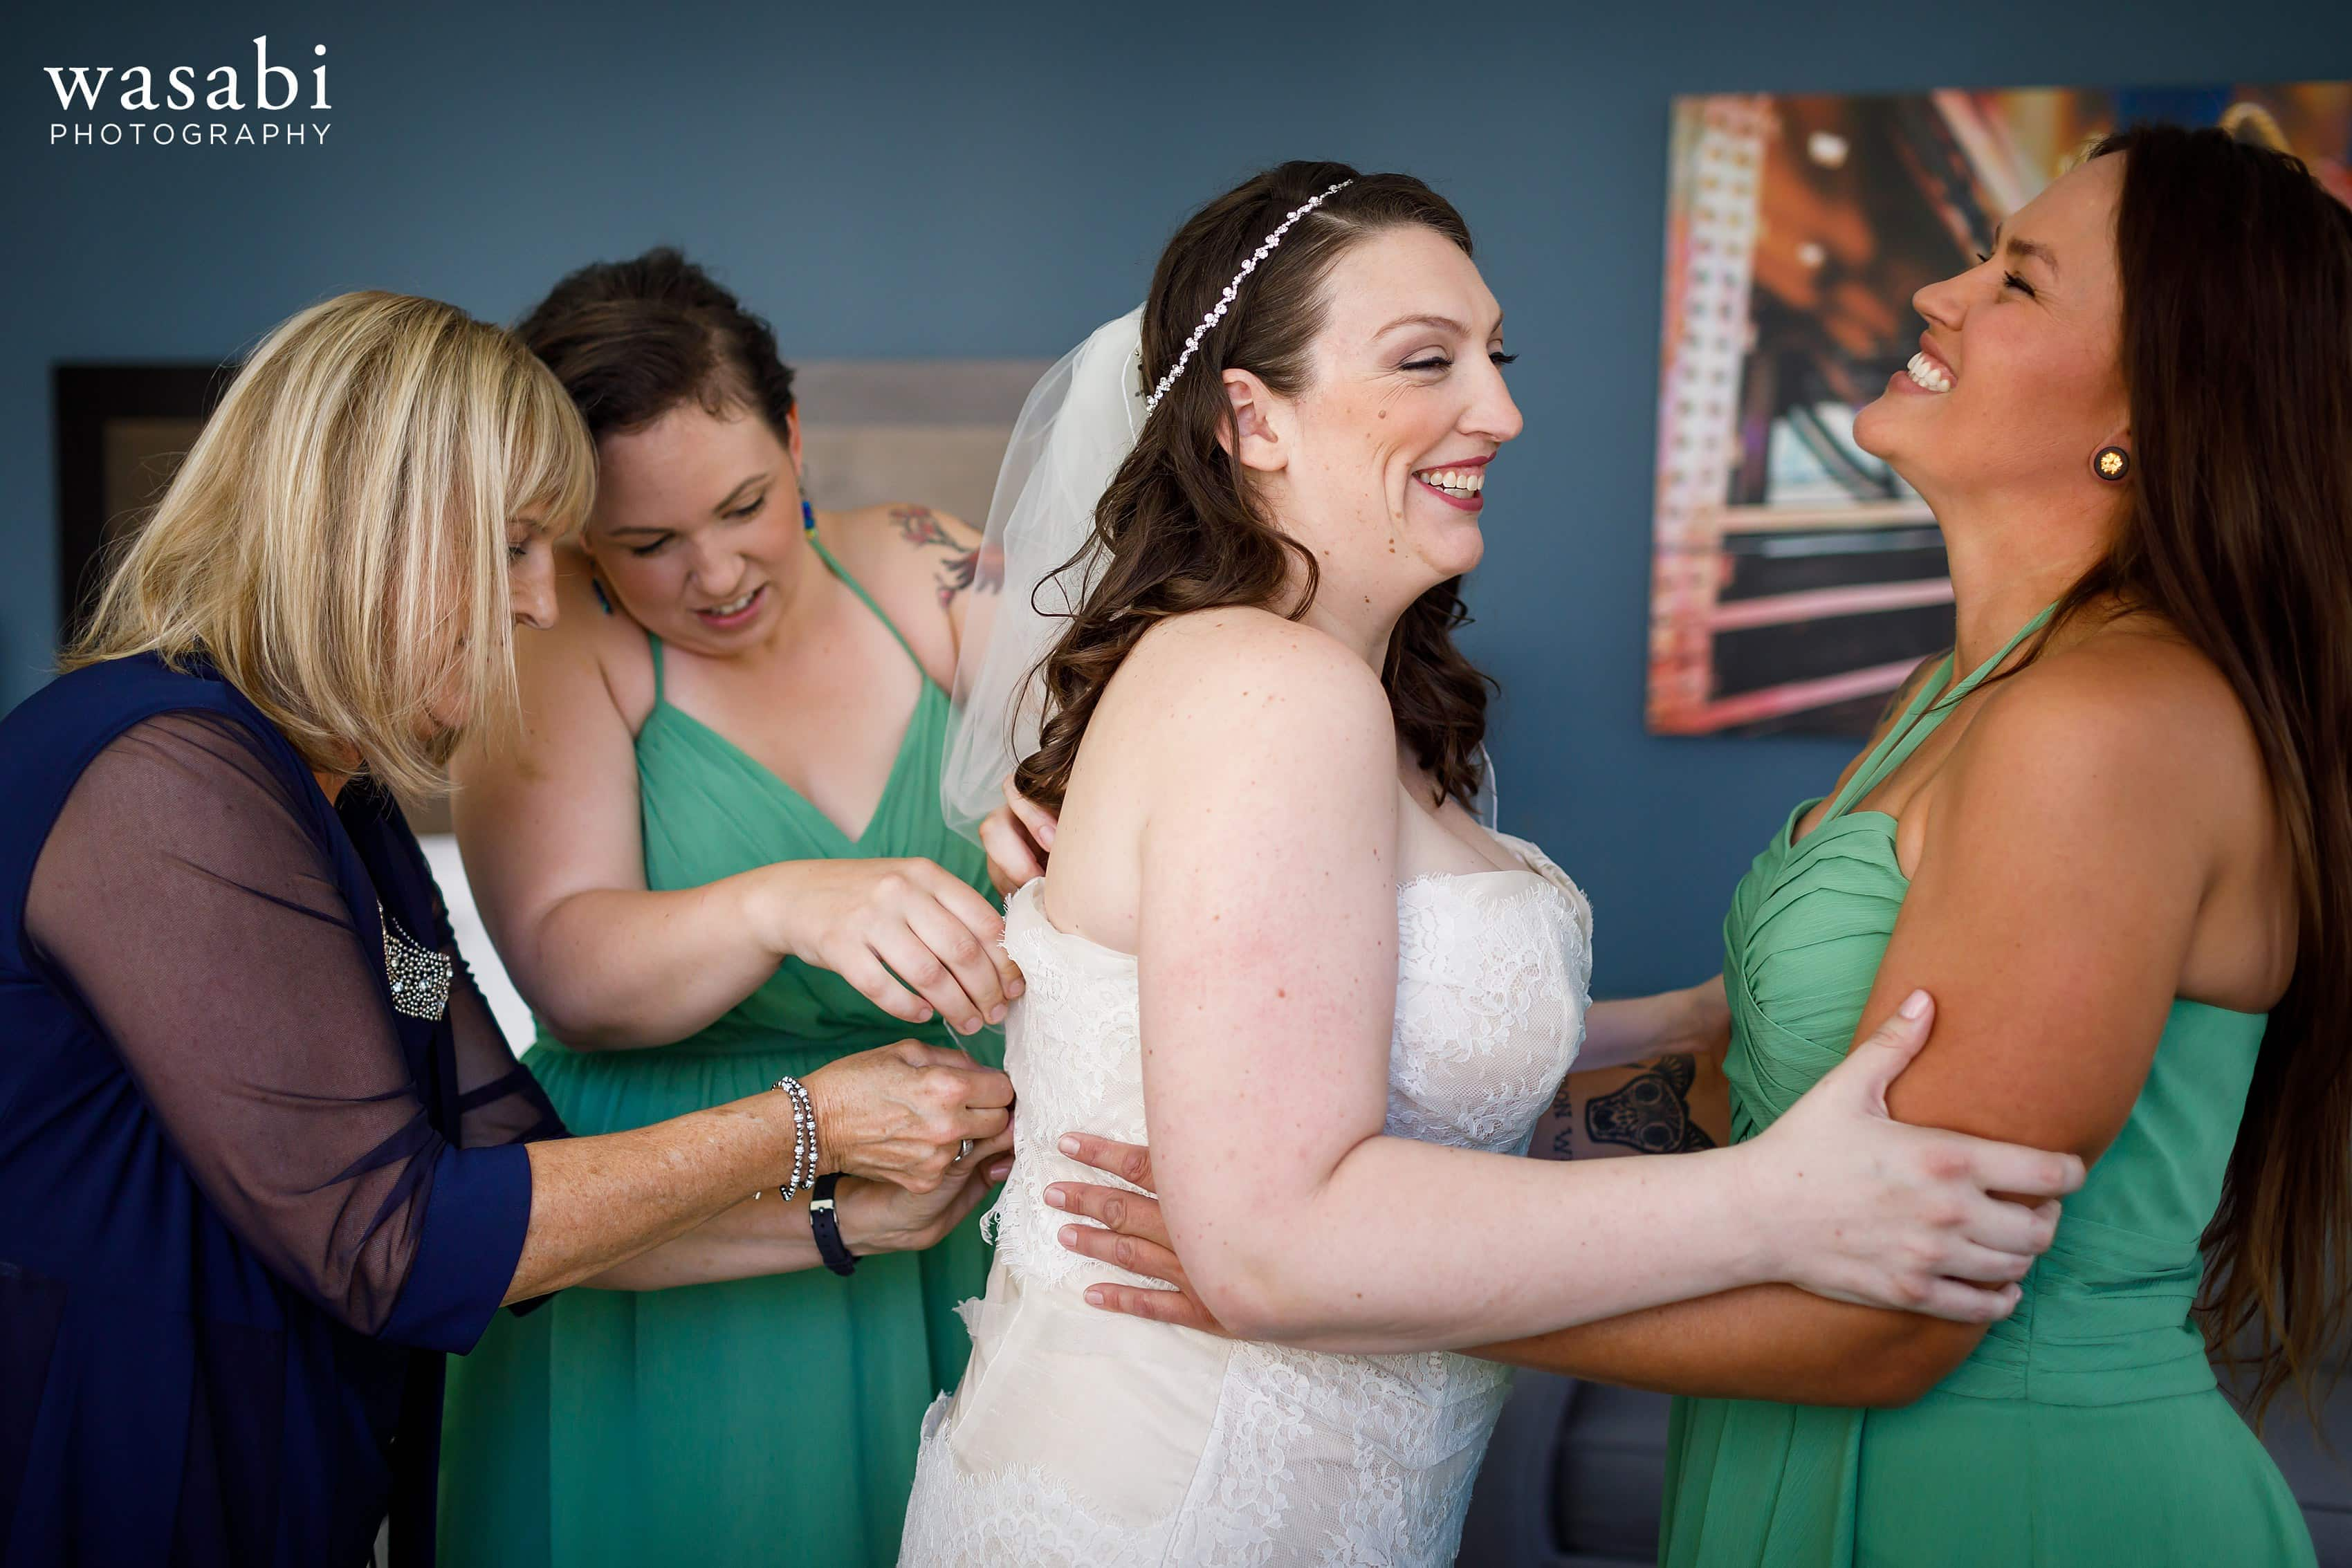 A bride gets into her dress with her mother and bridesmaids while getting ready for her wedding at La Quinta Inn & Suites in downtown Chicago